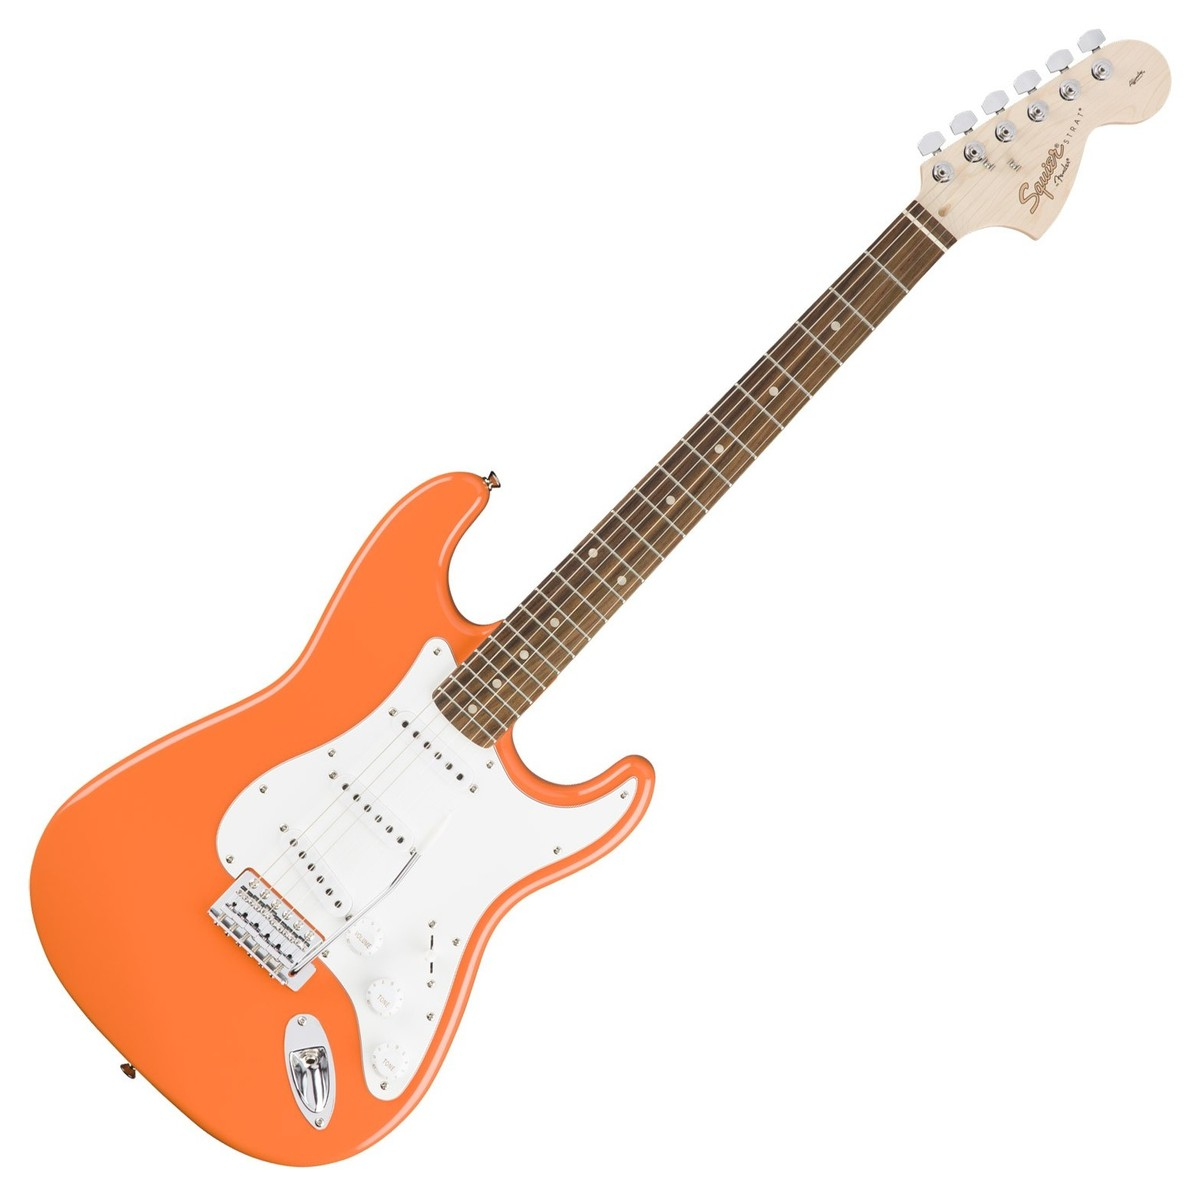 squier by fender affinity stratocaster competition orange at gear4music. Black Bedroom Furniture Sets. Home Design Ideas